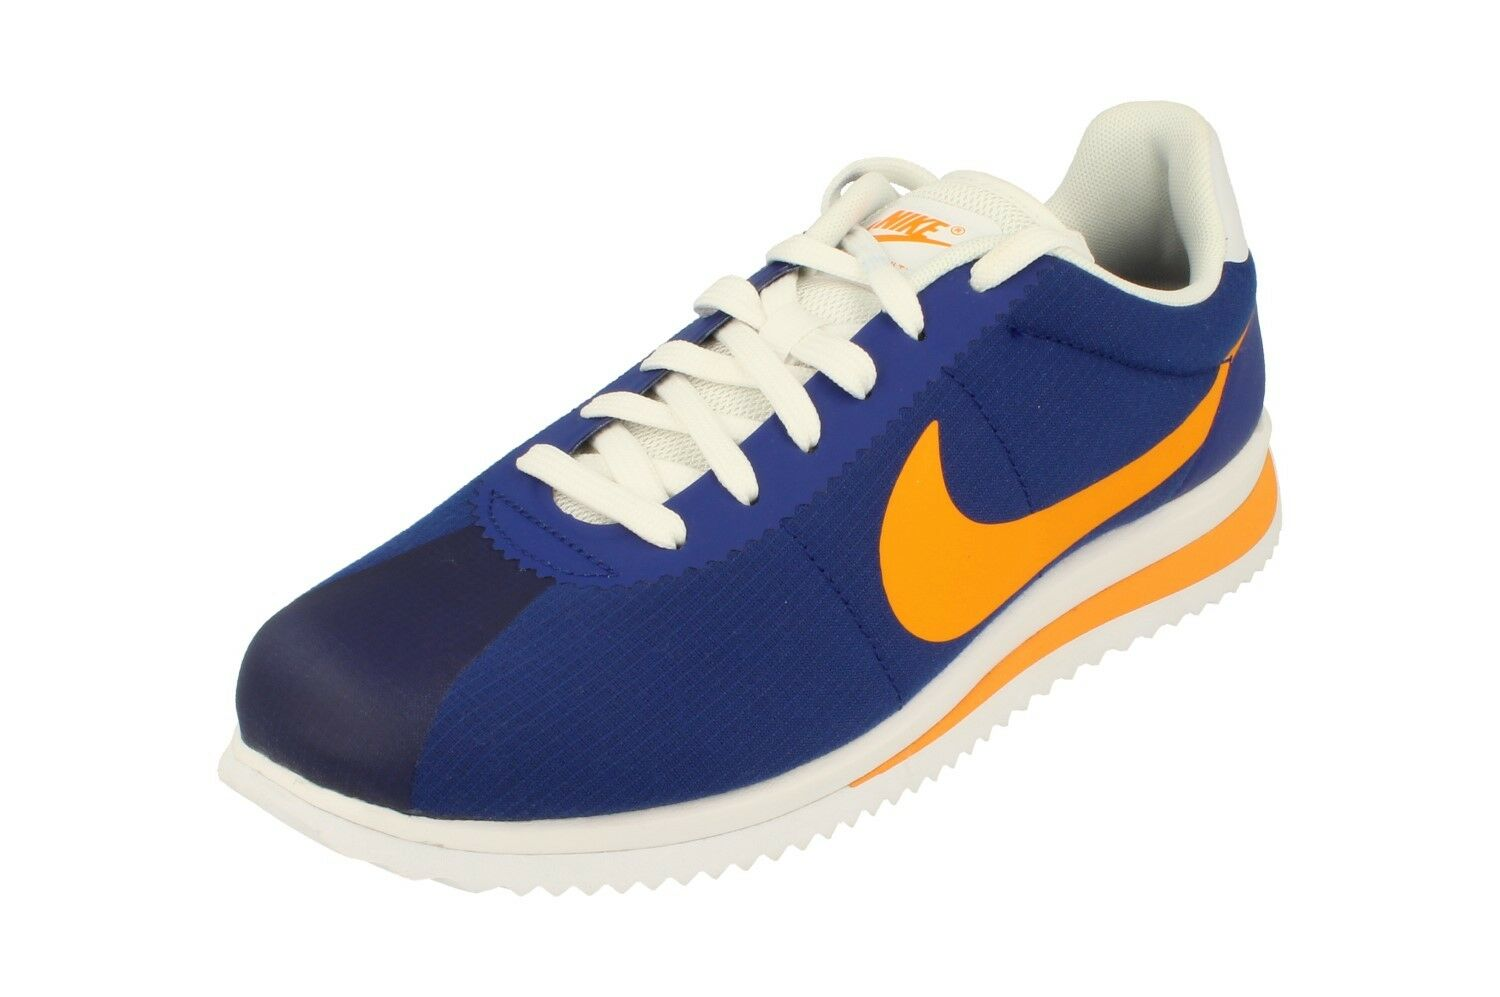 Nike Cortez Ultra  Uomo Schuhes Running Trainers 833142 Sneakers Schuhes Uomo 408 af2893